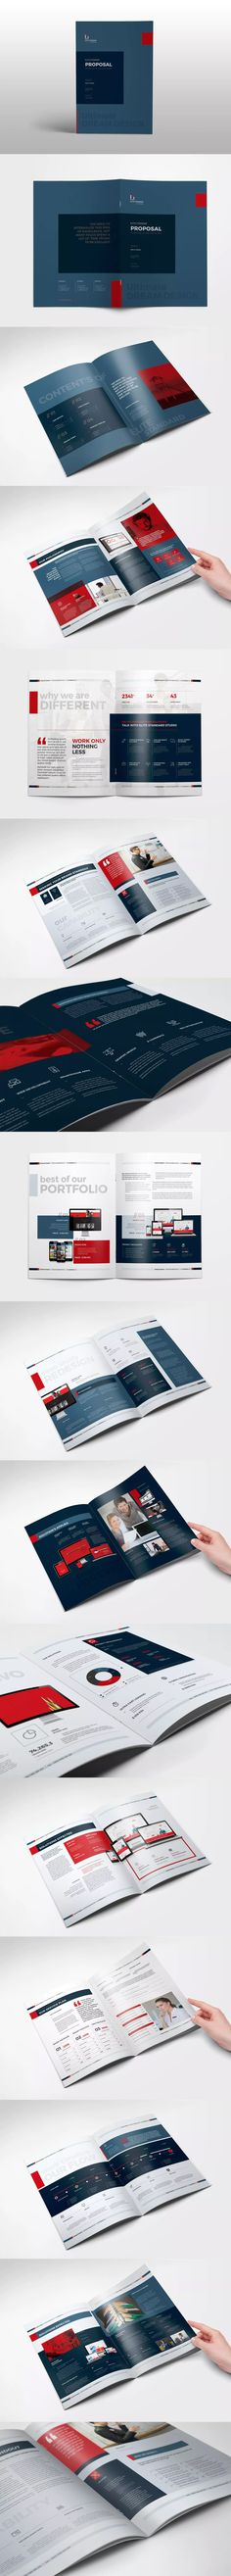 WebDesign Proposal Template Indesign Indd A And Us Letter Size